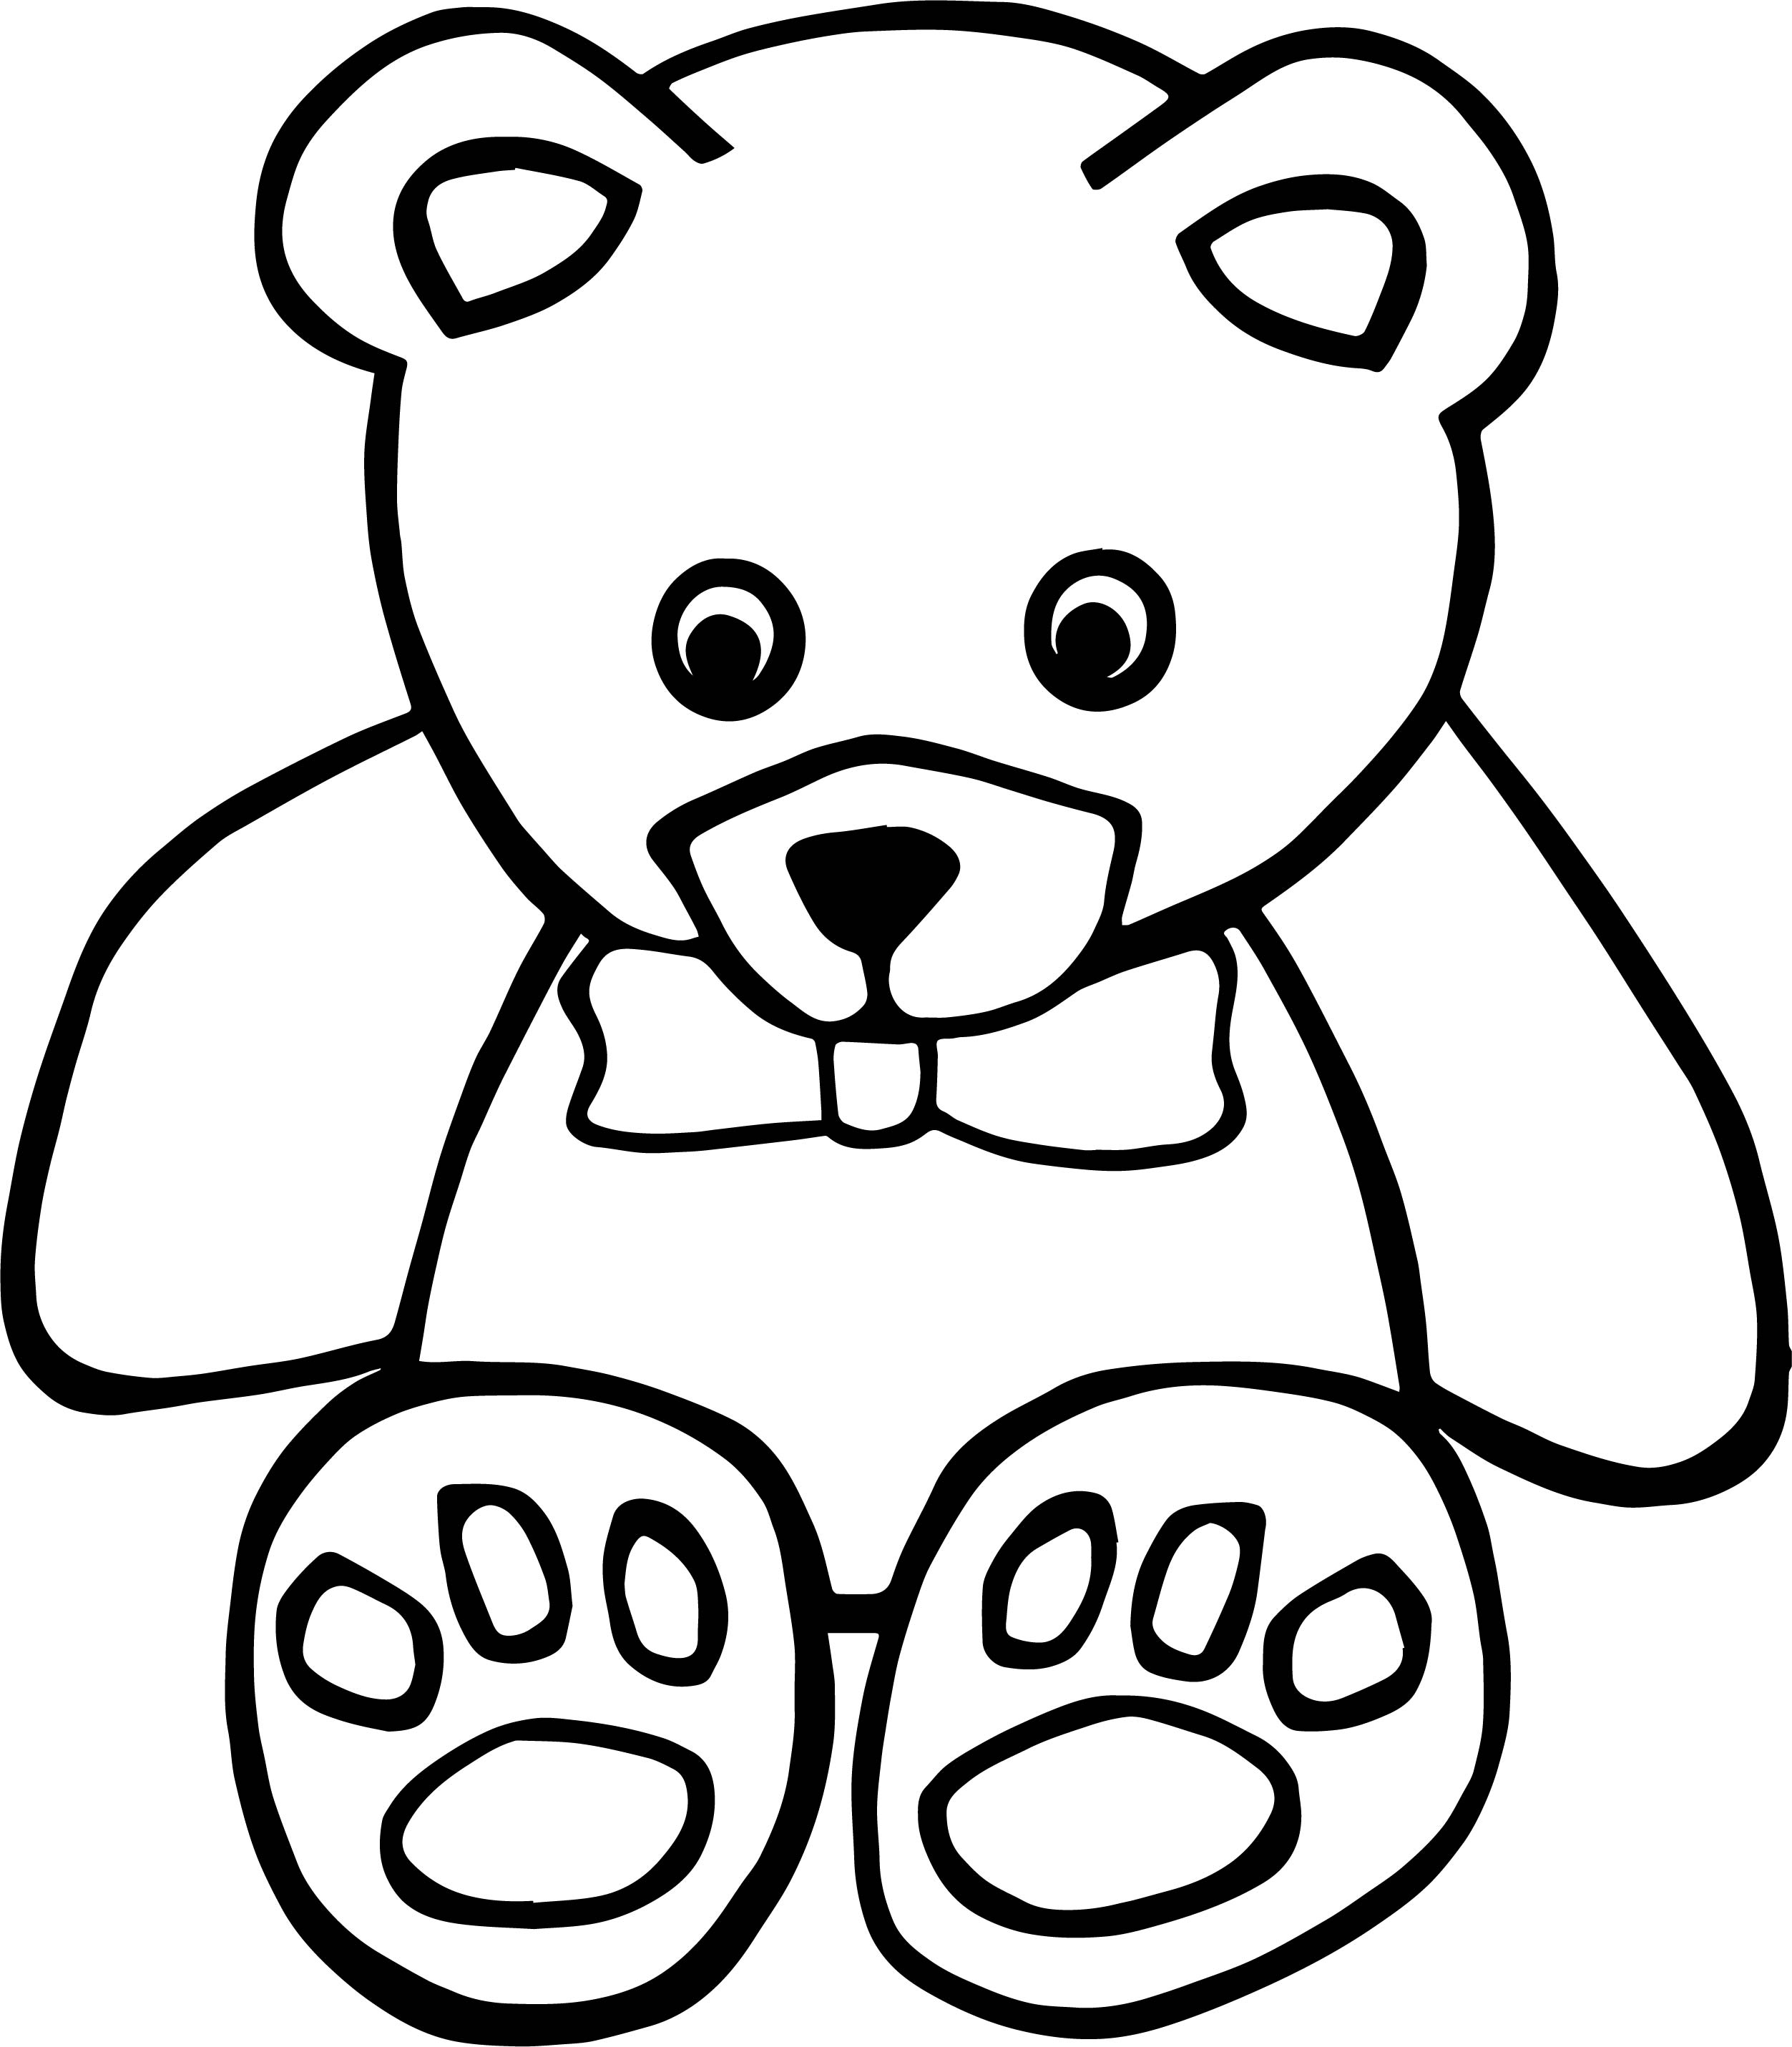 Thinking Toy Bear Coloring Page